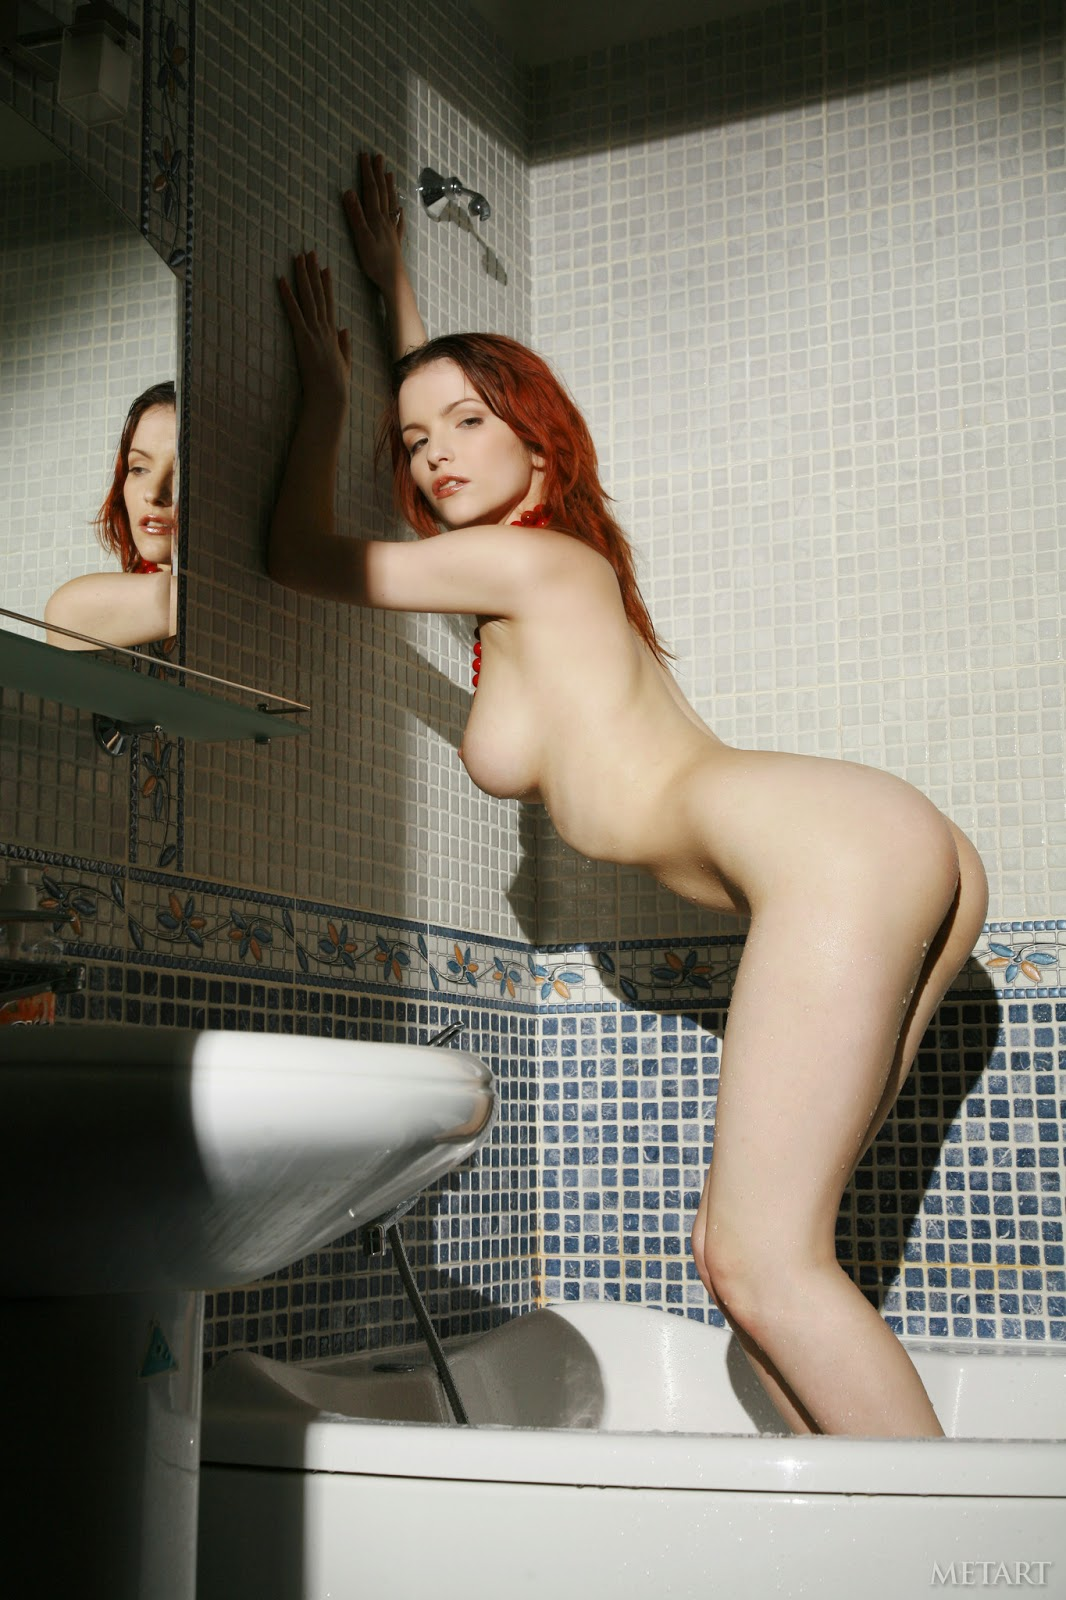 hottest redhead in the world nude